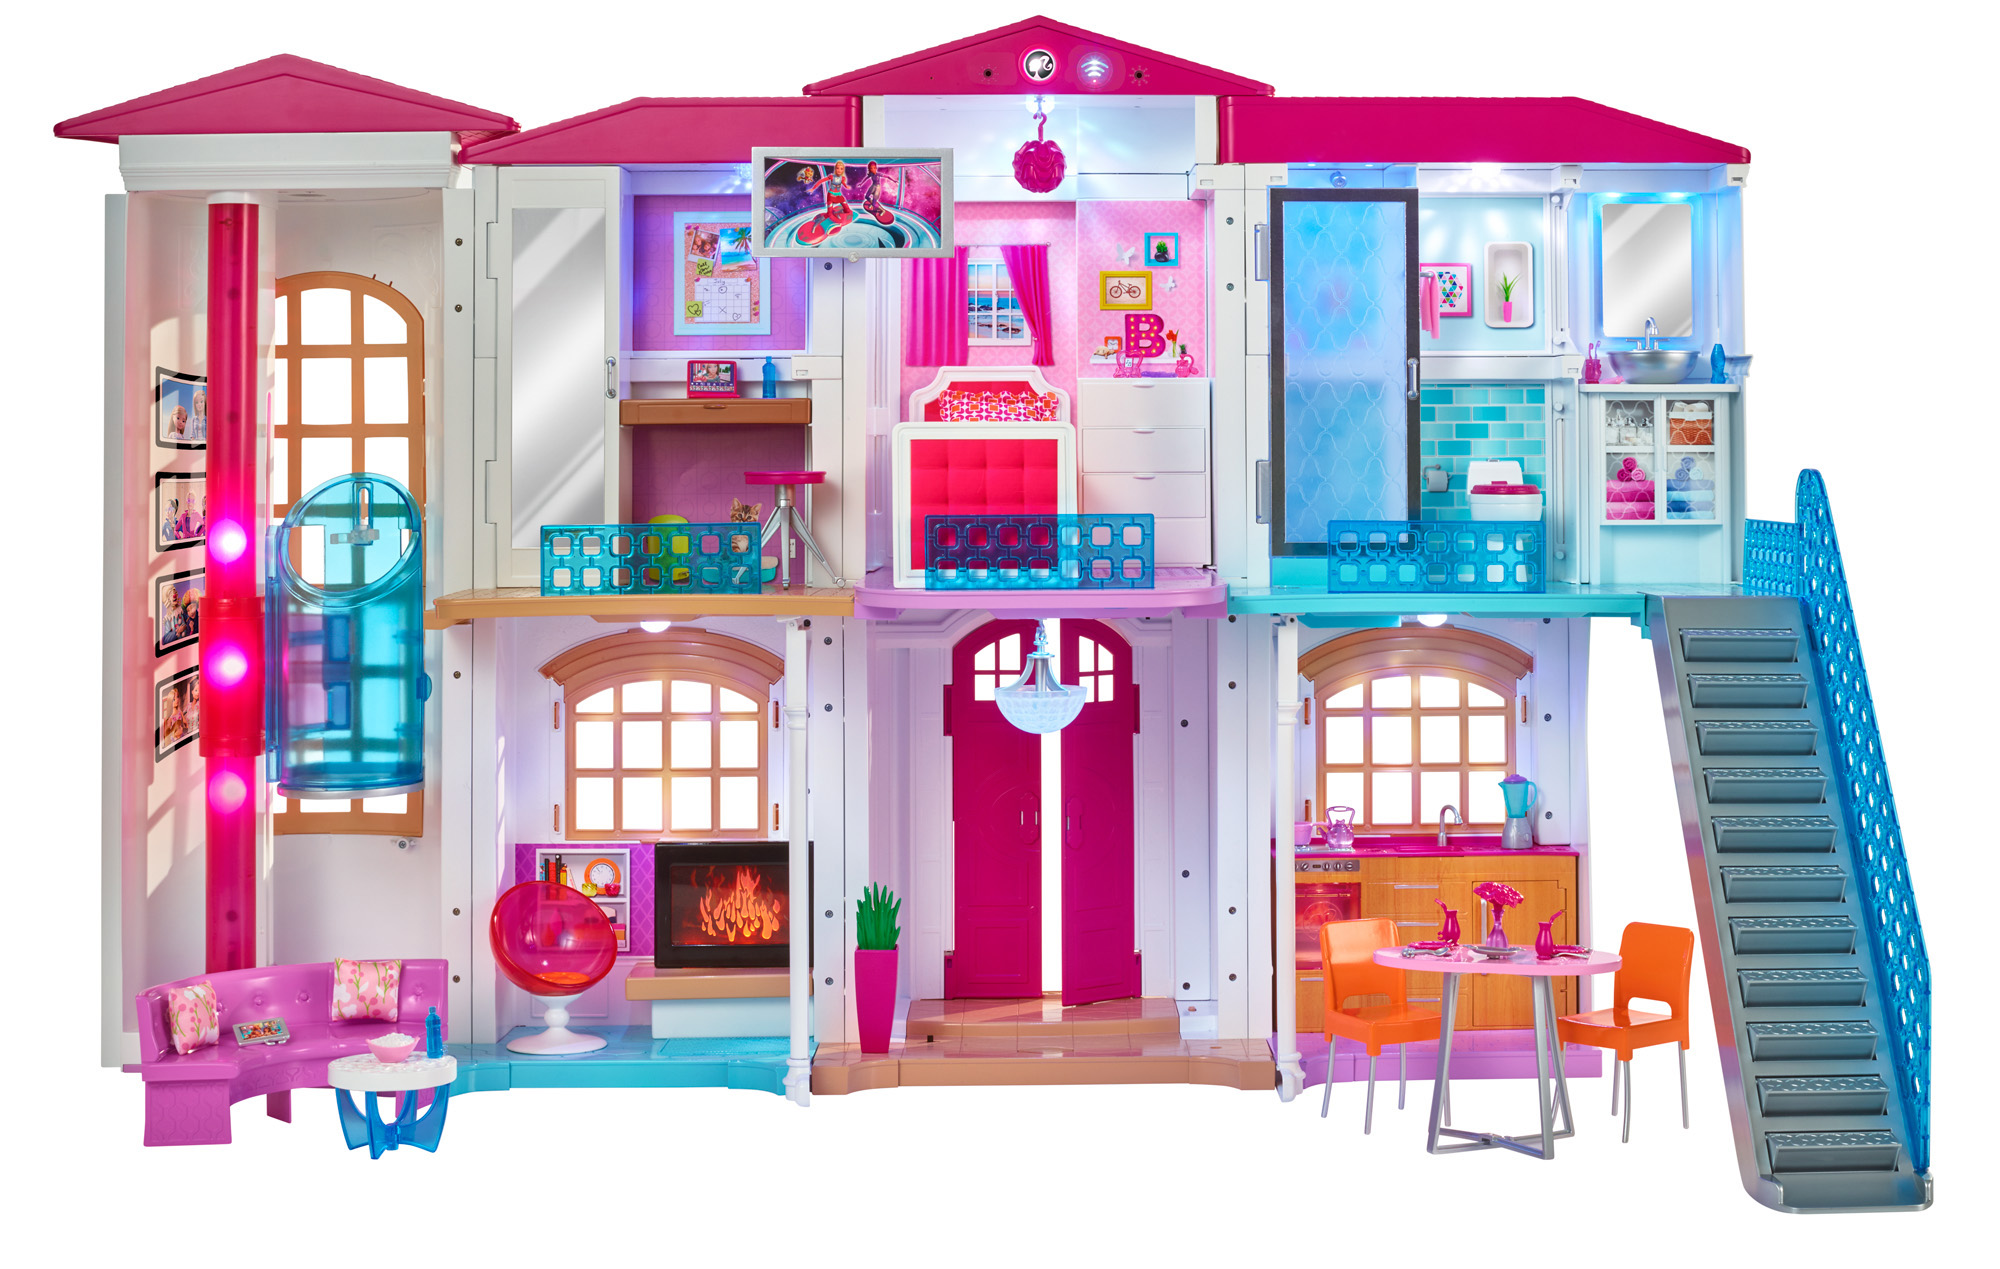 10 awesome barbie doll house models - 10 Awesome Barbie Doll House Models 13